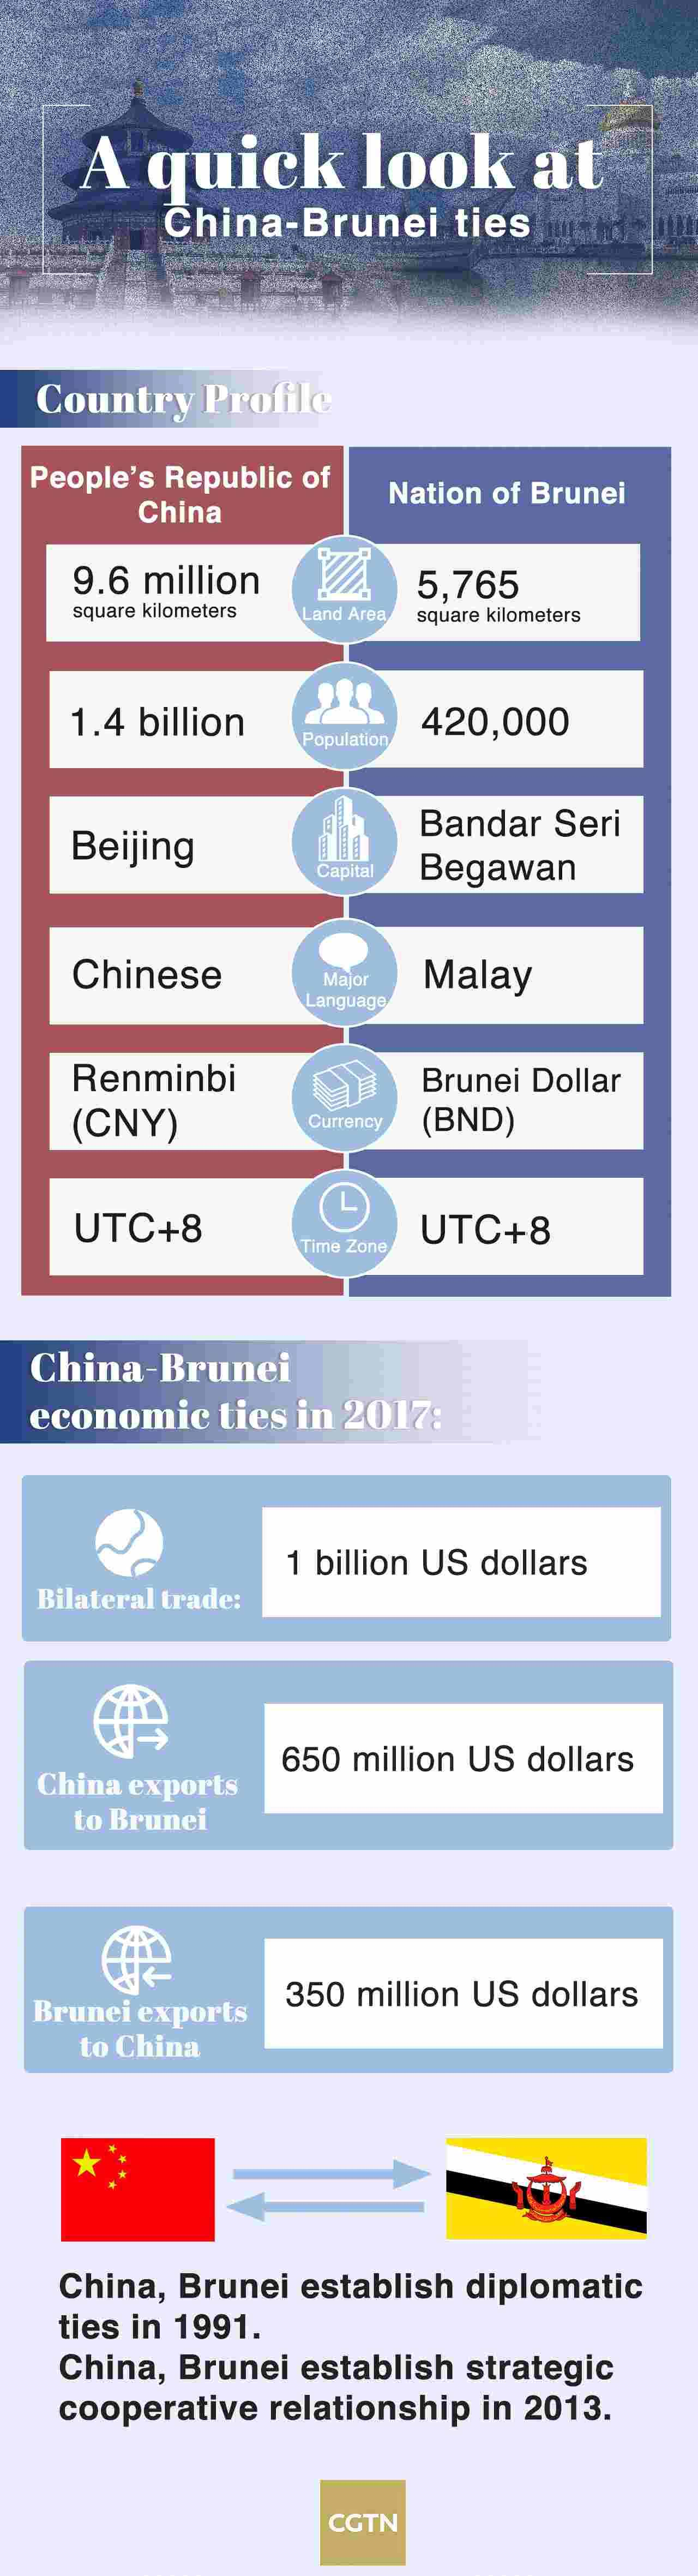 A quick look at China-Brunei ties - CGTN